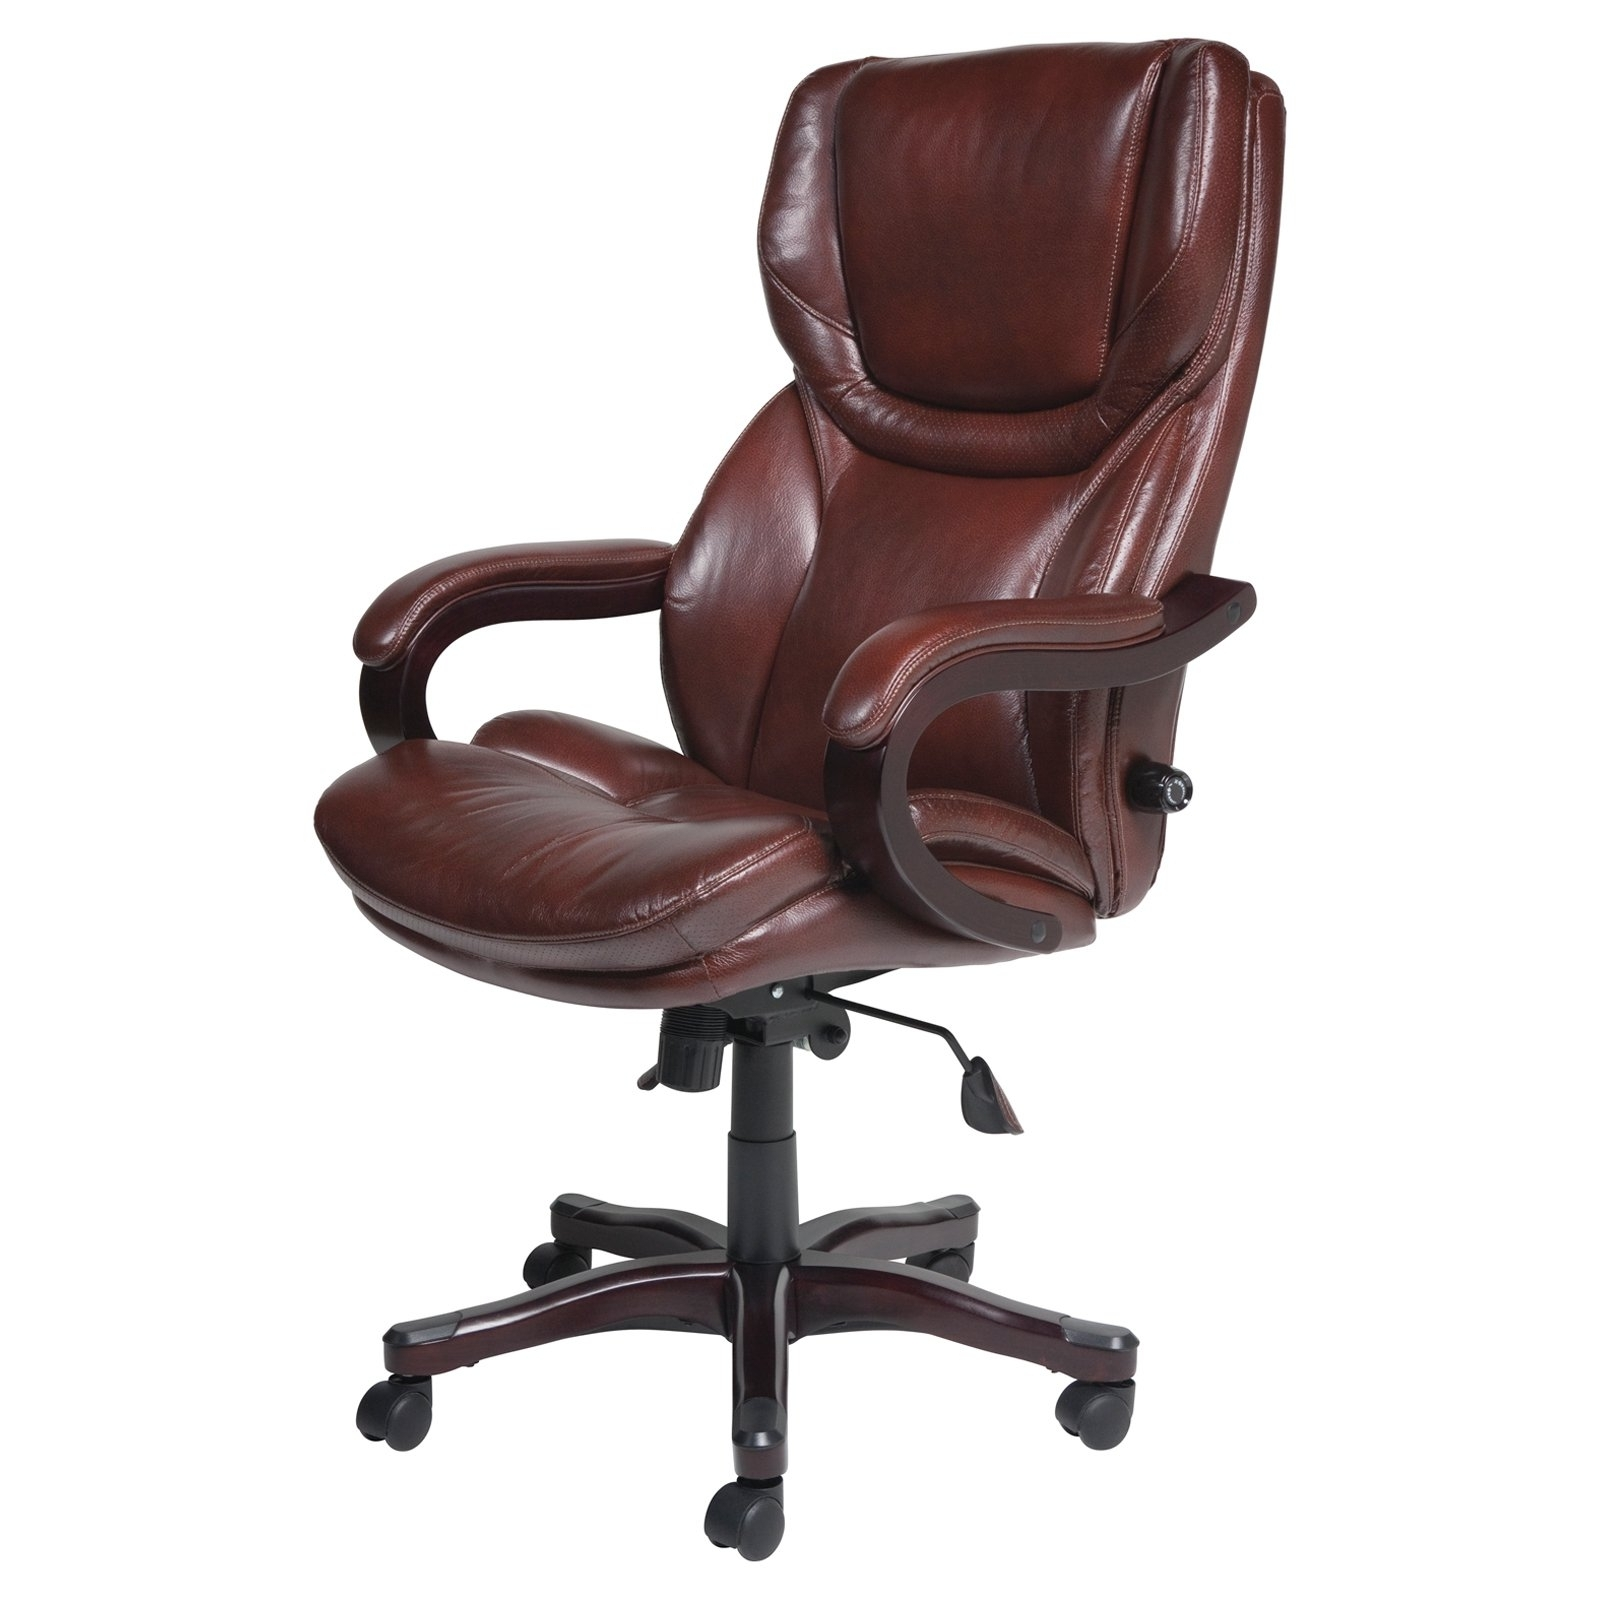 Most Recent Chair : Ergonomic Black Leather Executive Office Chair Verona Within Brown Executive Office Chairs (View 15 of 20)